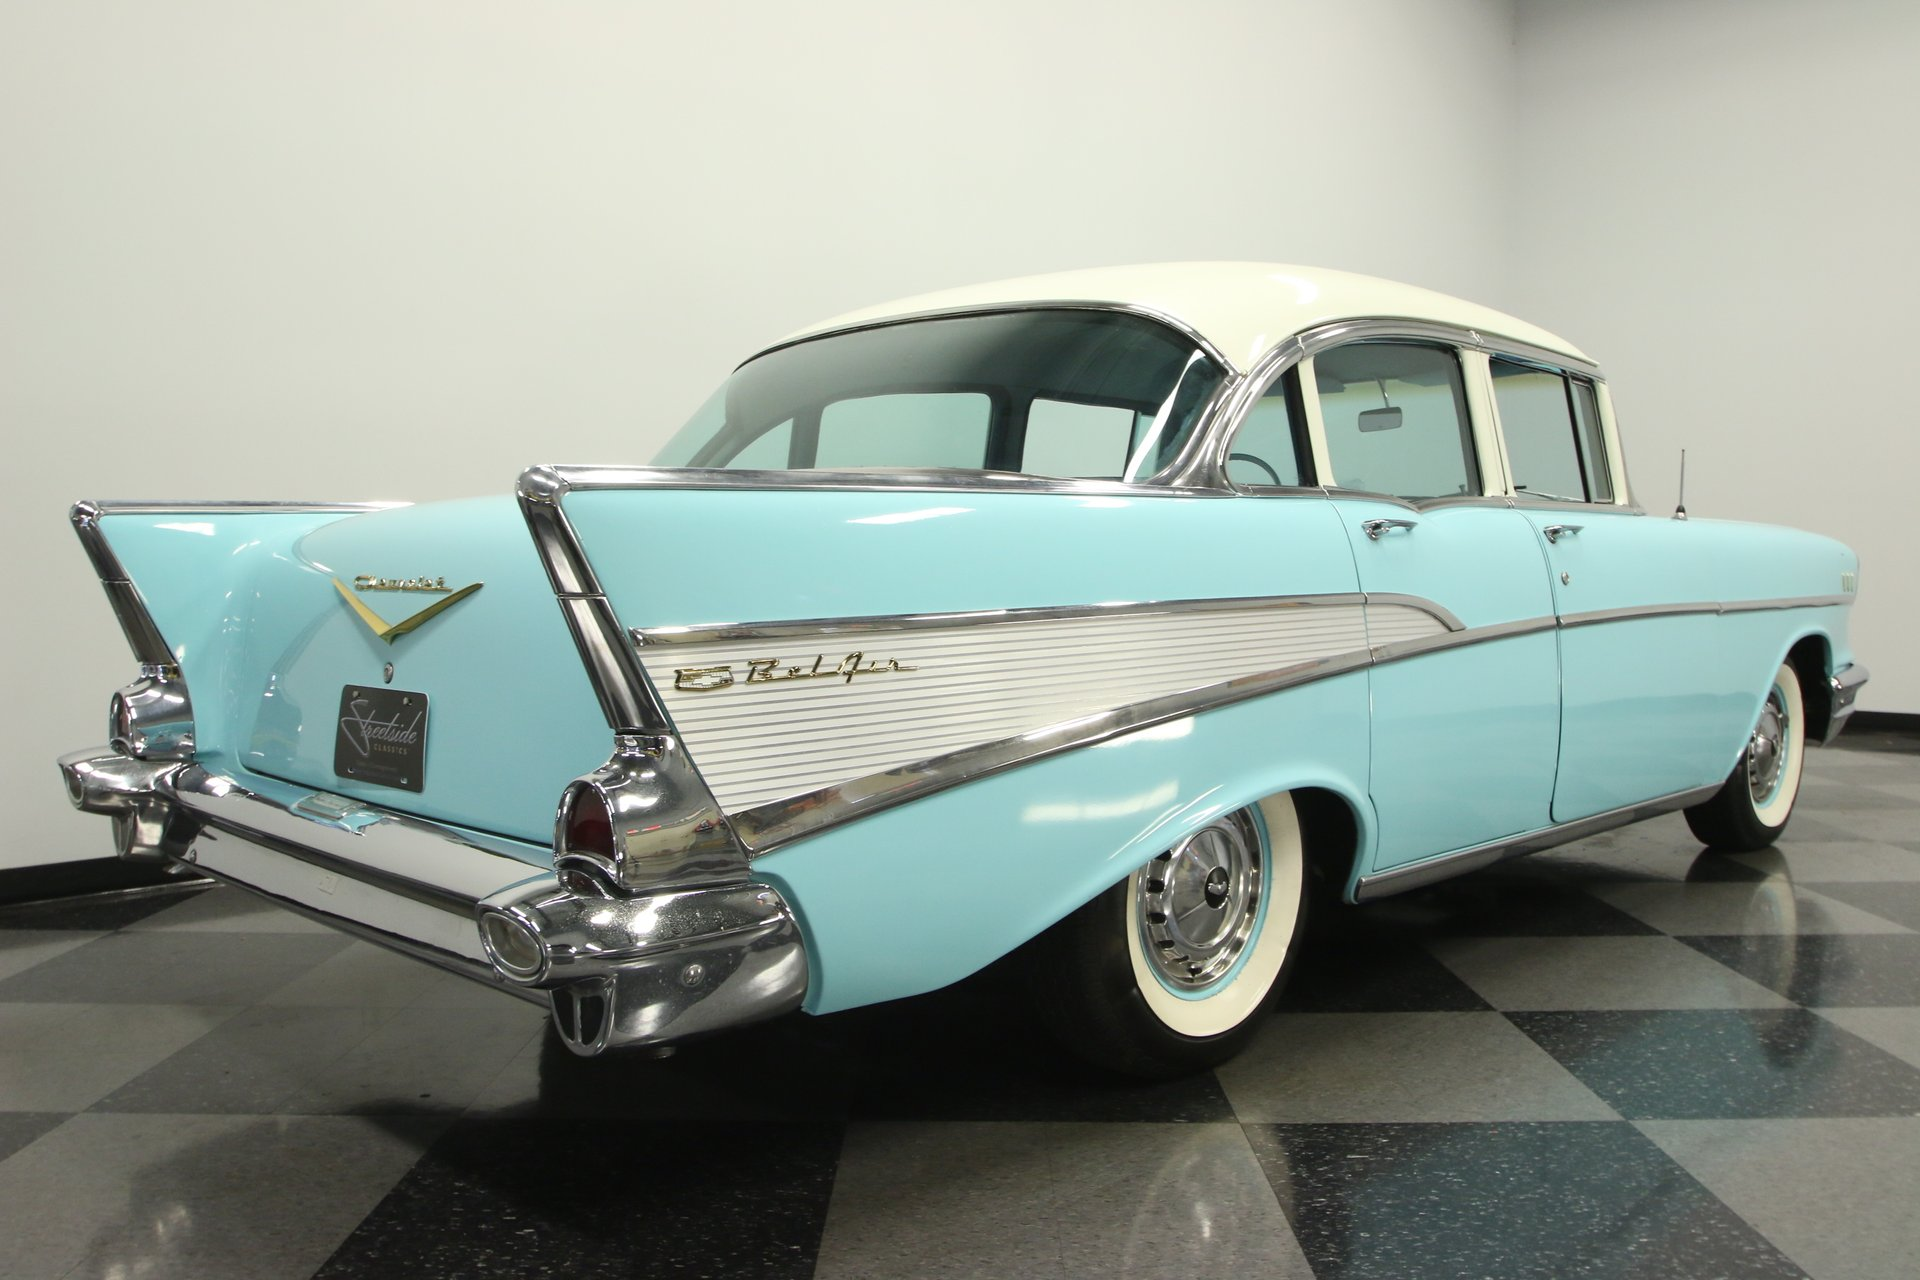 1957 Chevrolet Bel Air Streetside Classics The Nations Trusted Chevy Hardtop 4 Door For Sale Spincar View Play Video 360